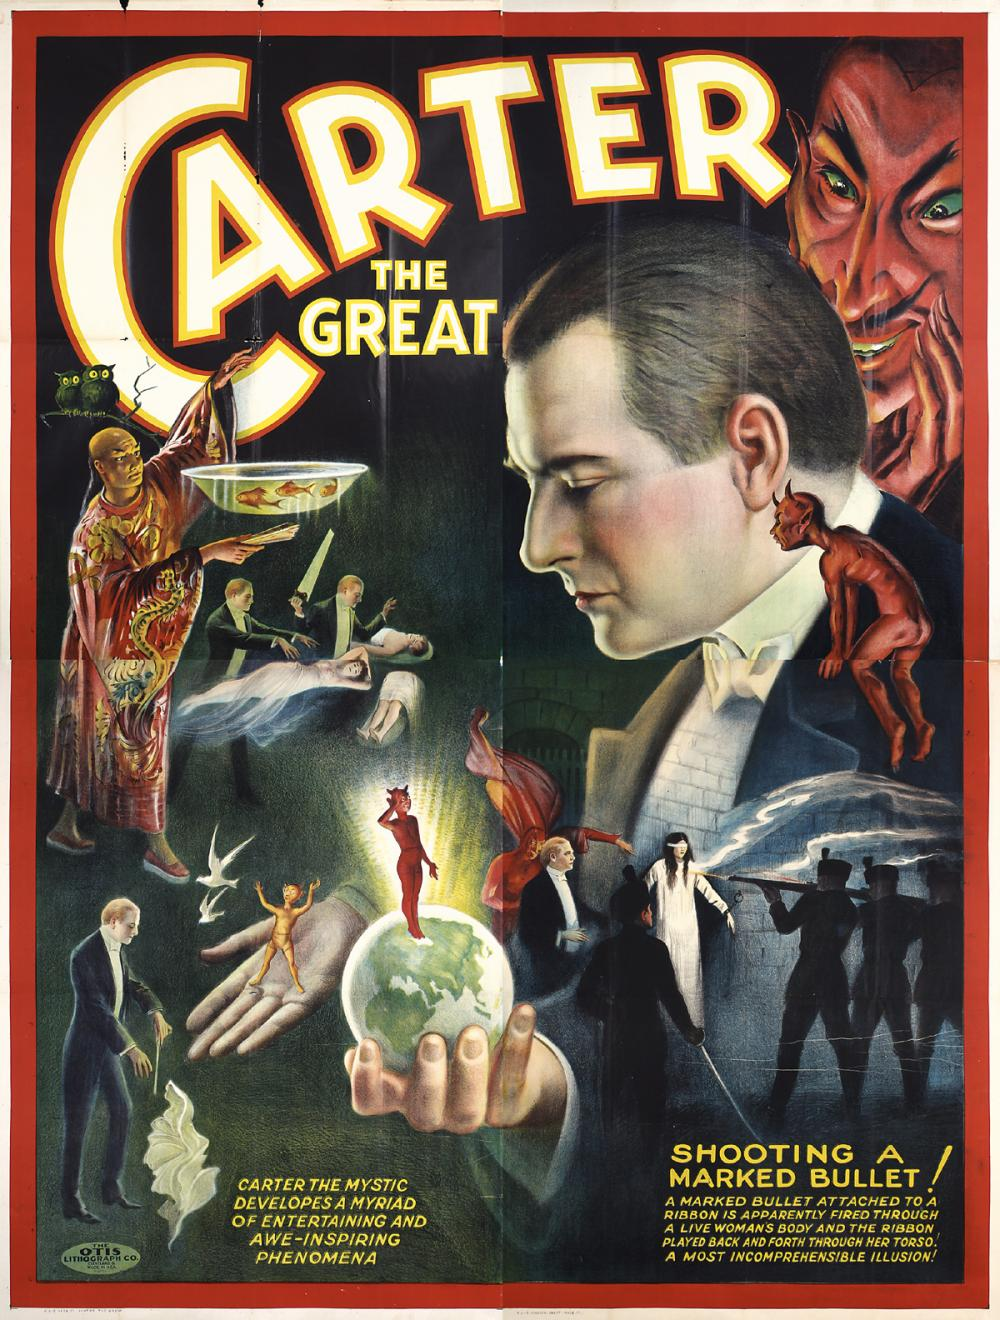 illustrational poster of a suited man holding a crystal ball that resembles Earth